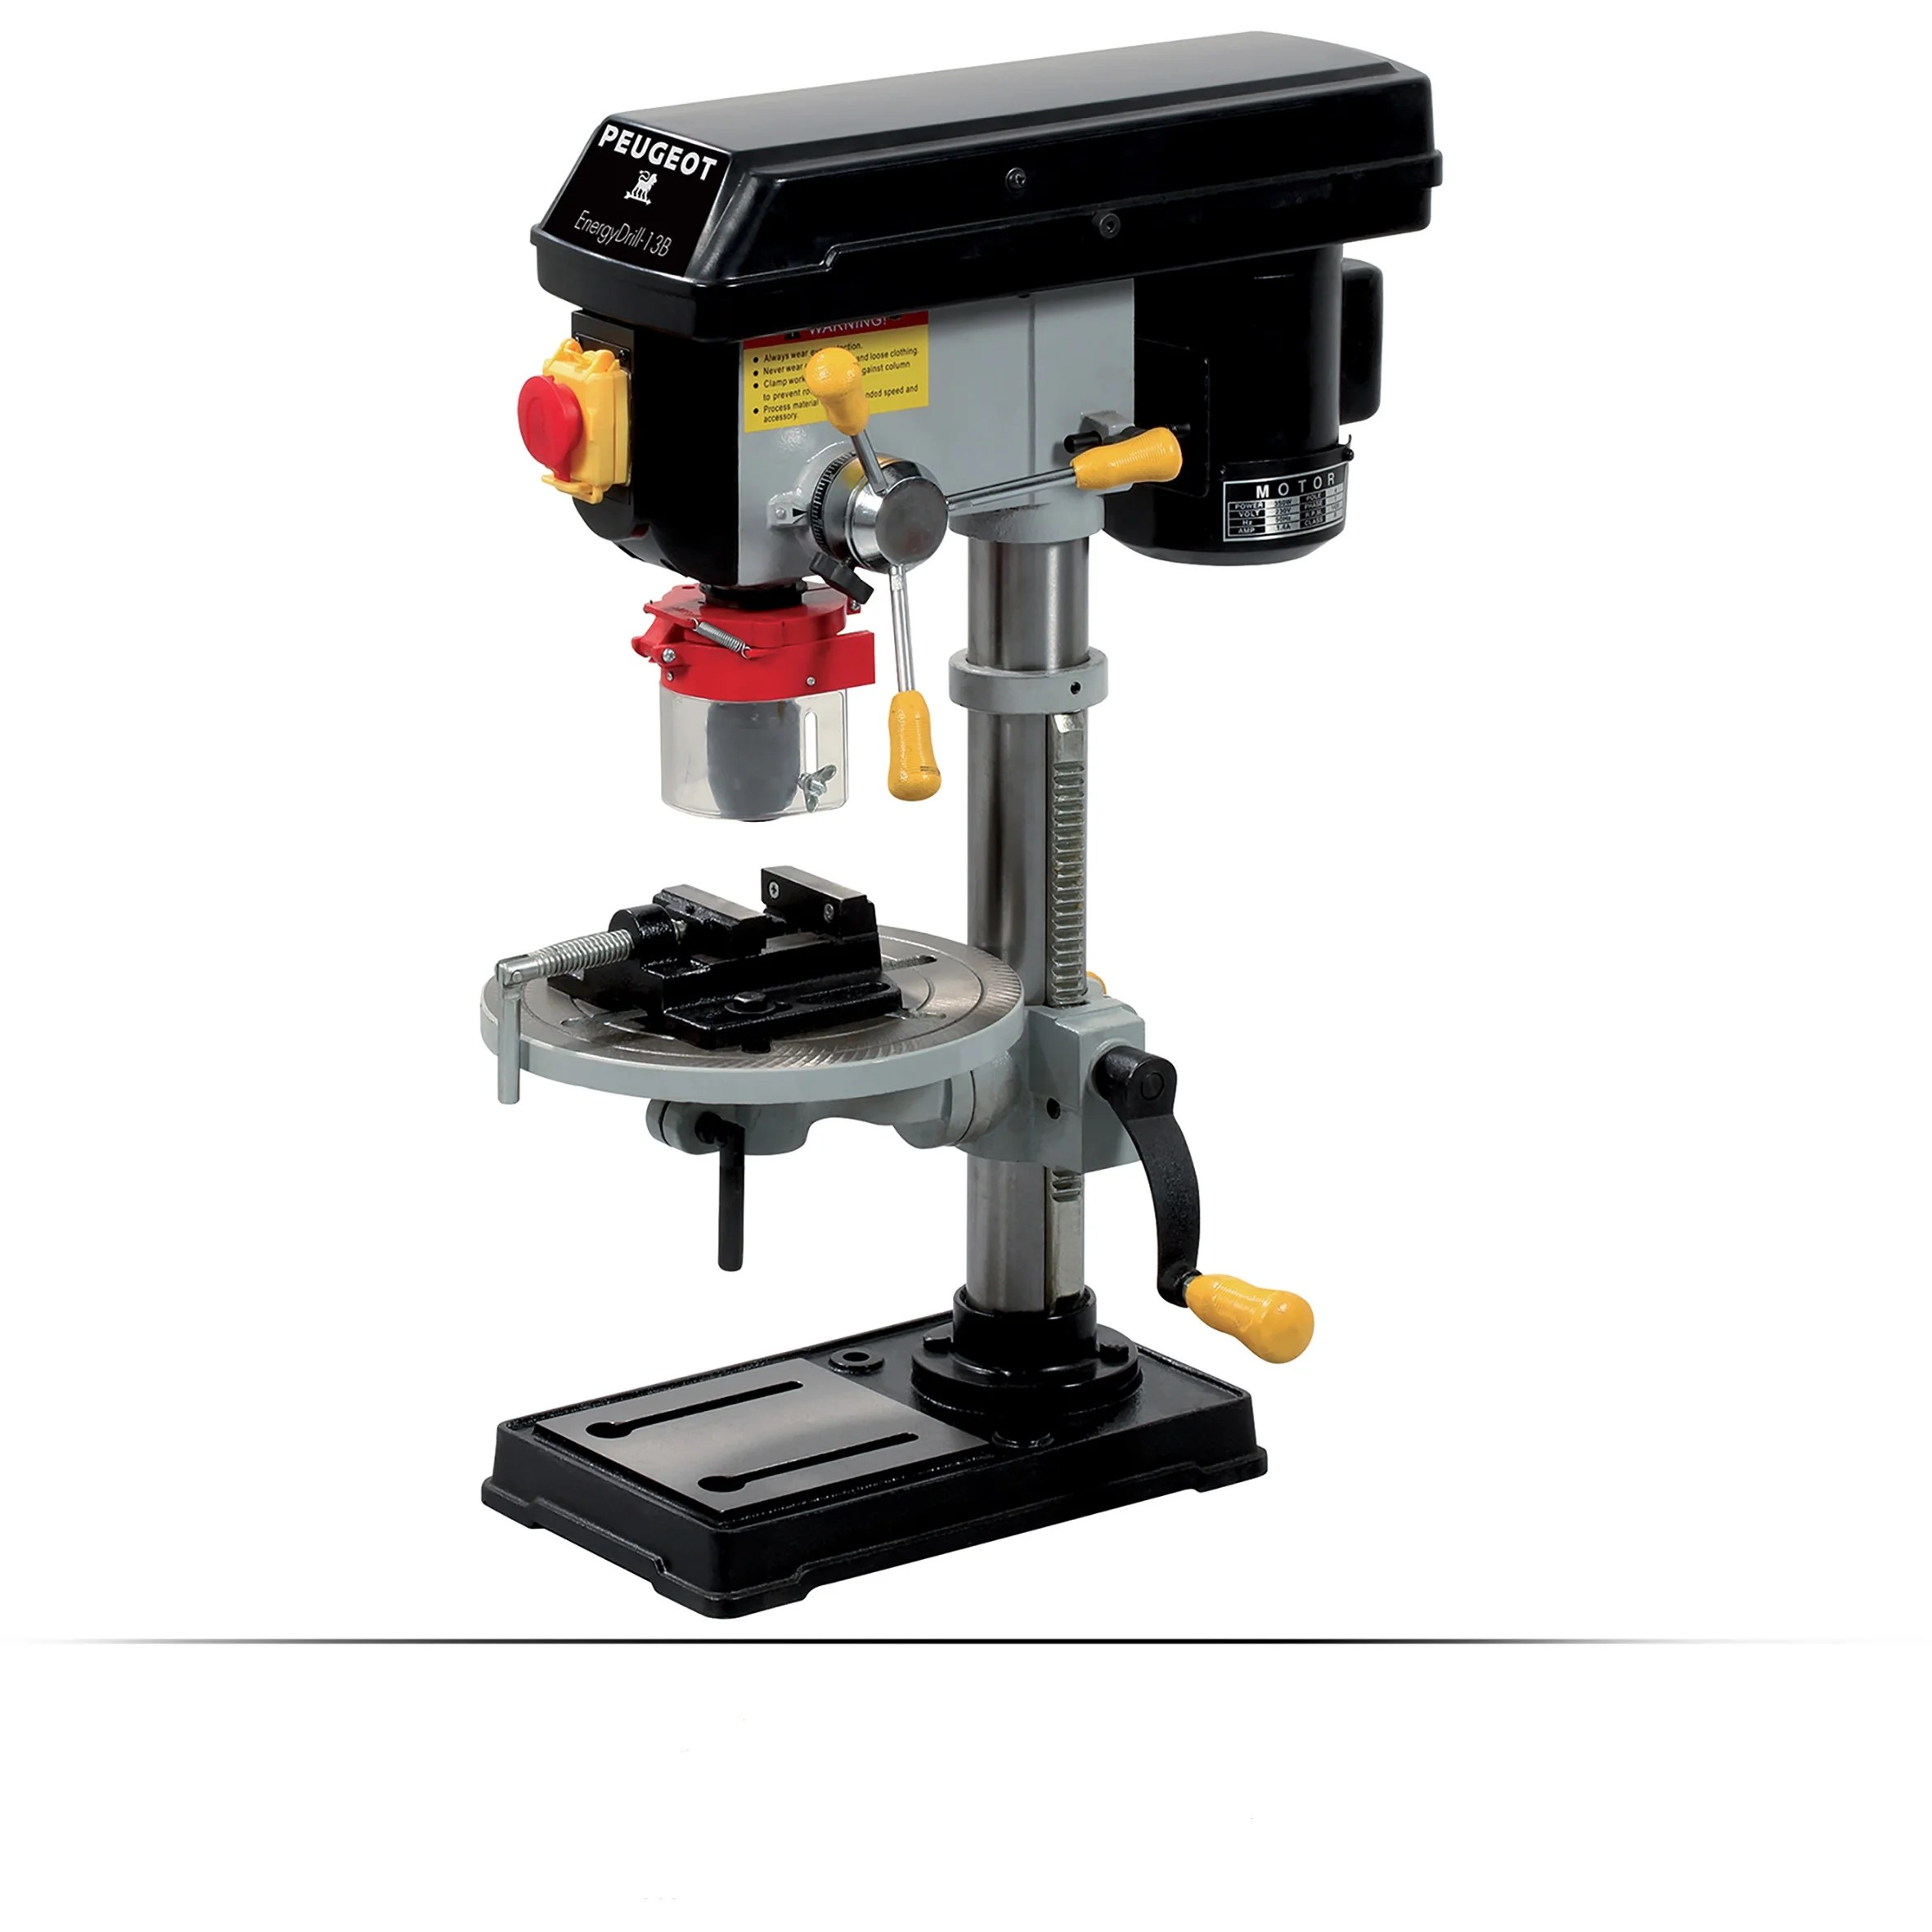 Perceuse A Colonne Peugeot Energydrill 13 B 13 Mm 350 W Leroy Merlin